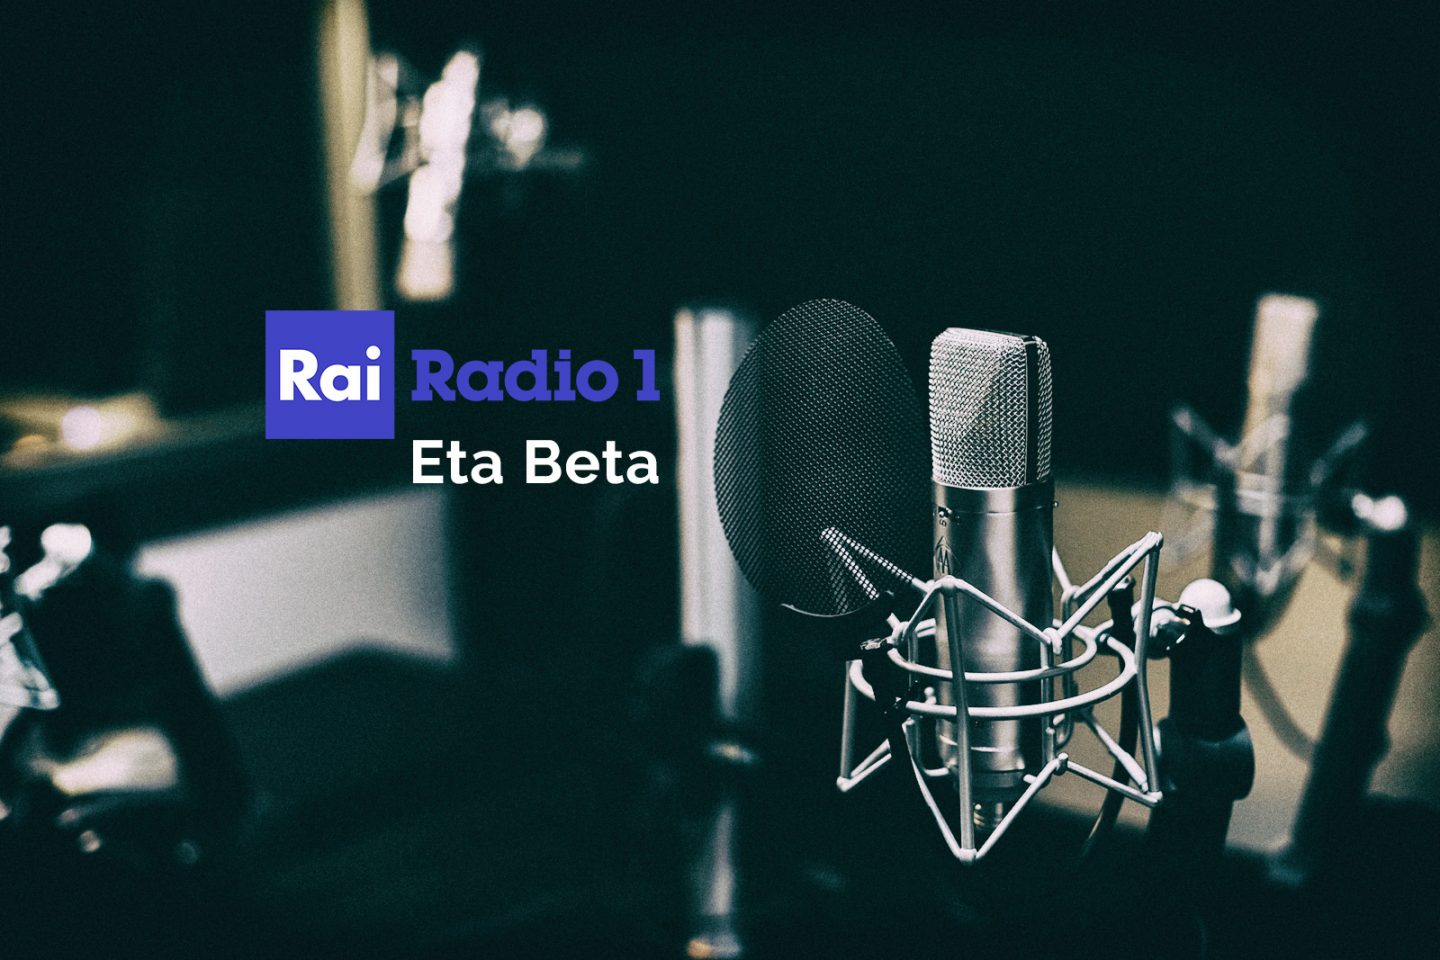 Le ultime tendenze della digital health a Eta Beta – Radio 1